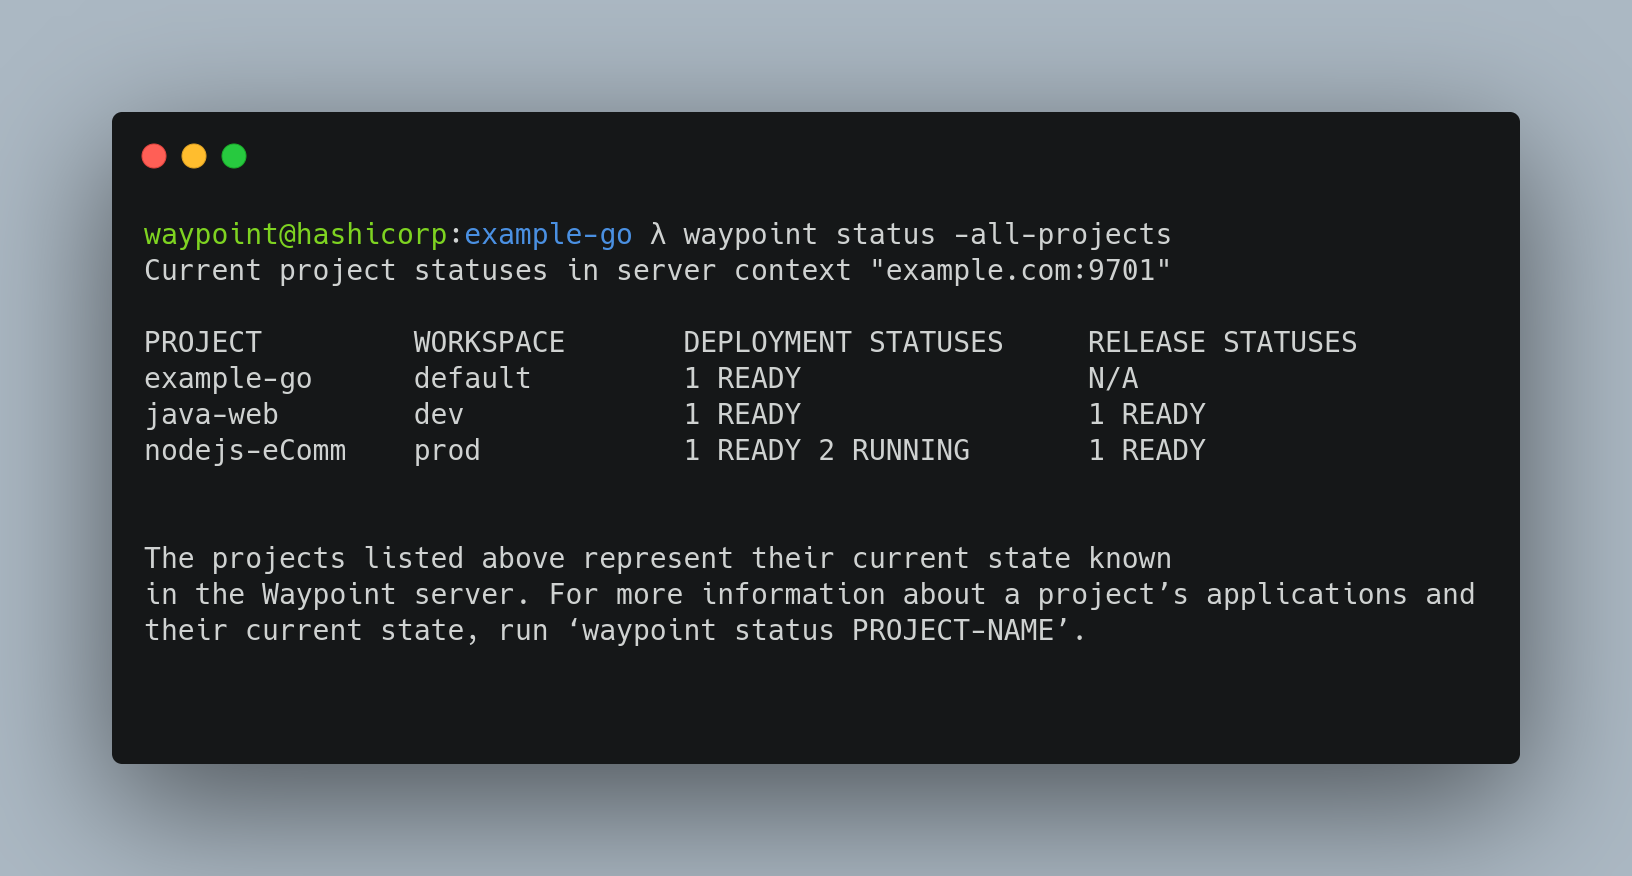 Waypoint status for all projects